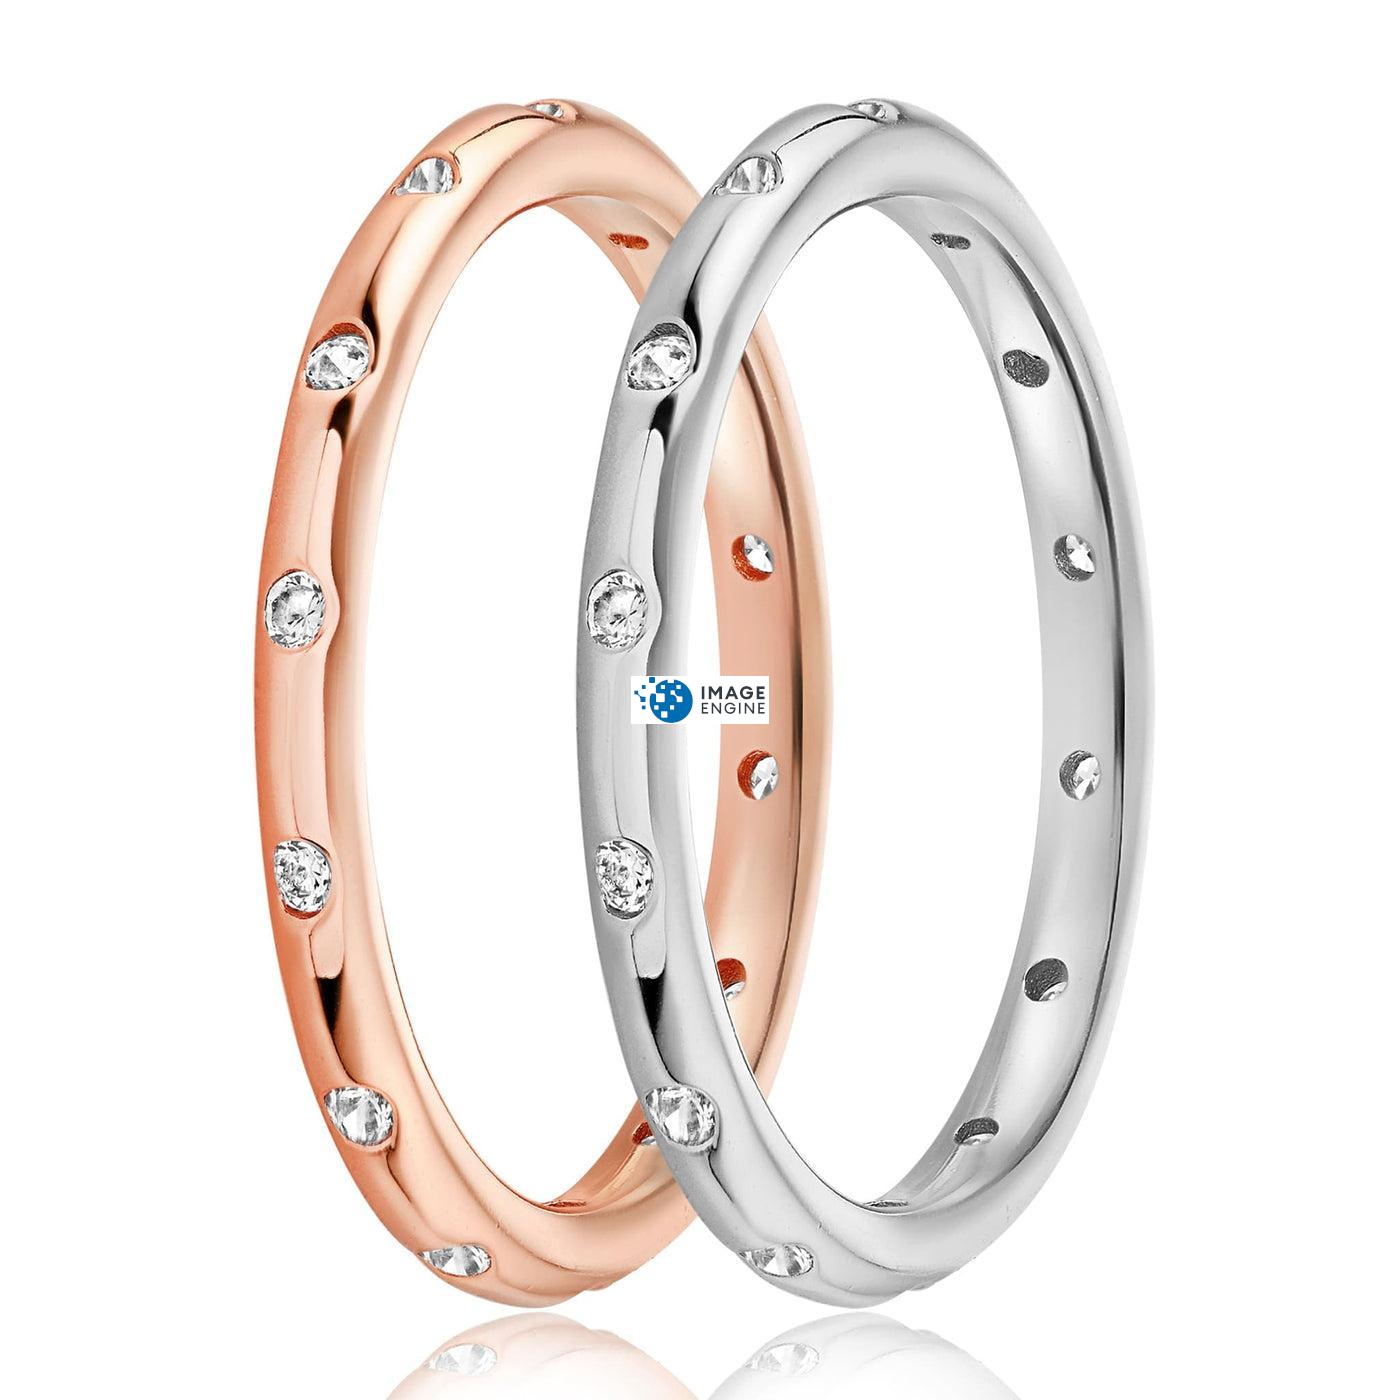 Droplet Ring - Side by Side - 925 Sterling Silver and 18K Rose Gold Vermeil